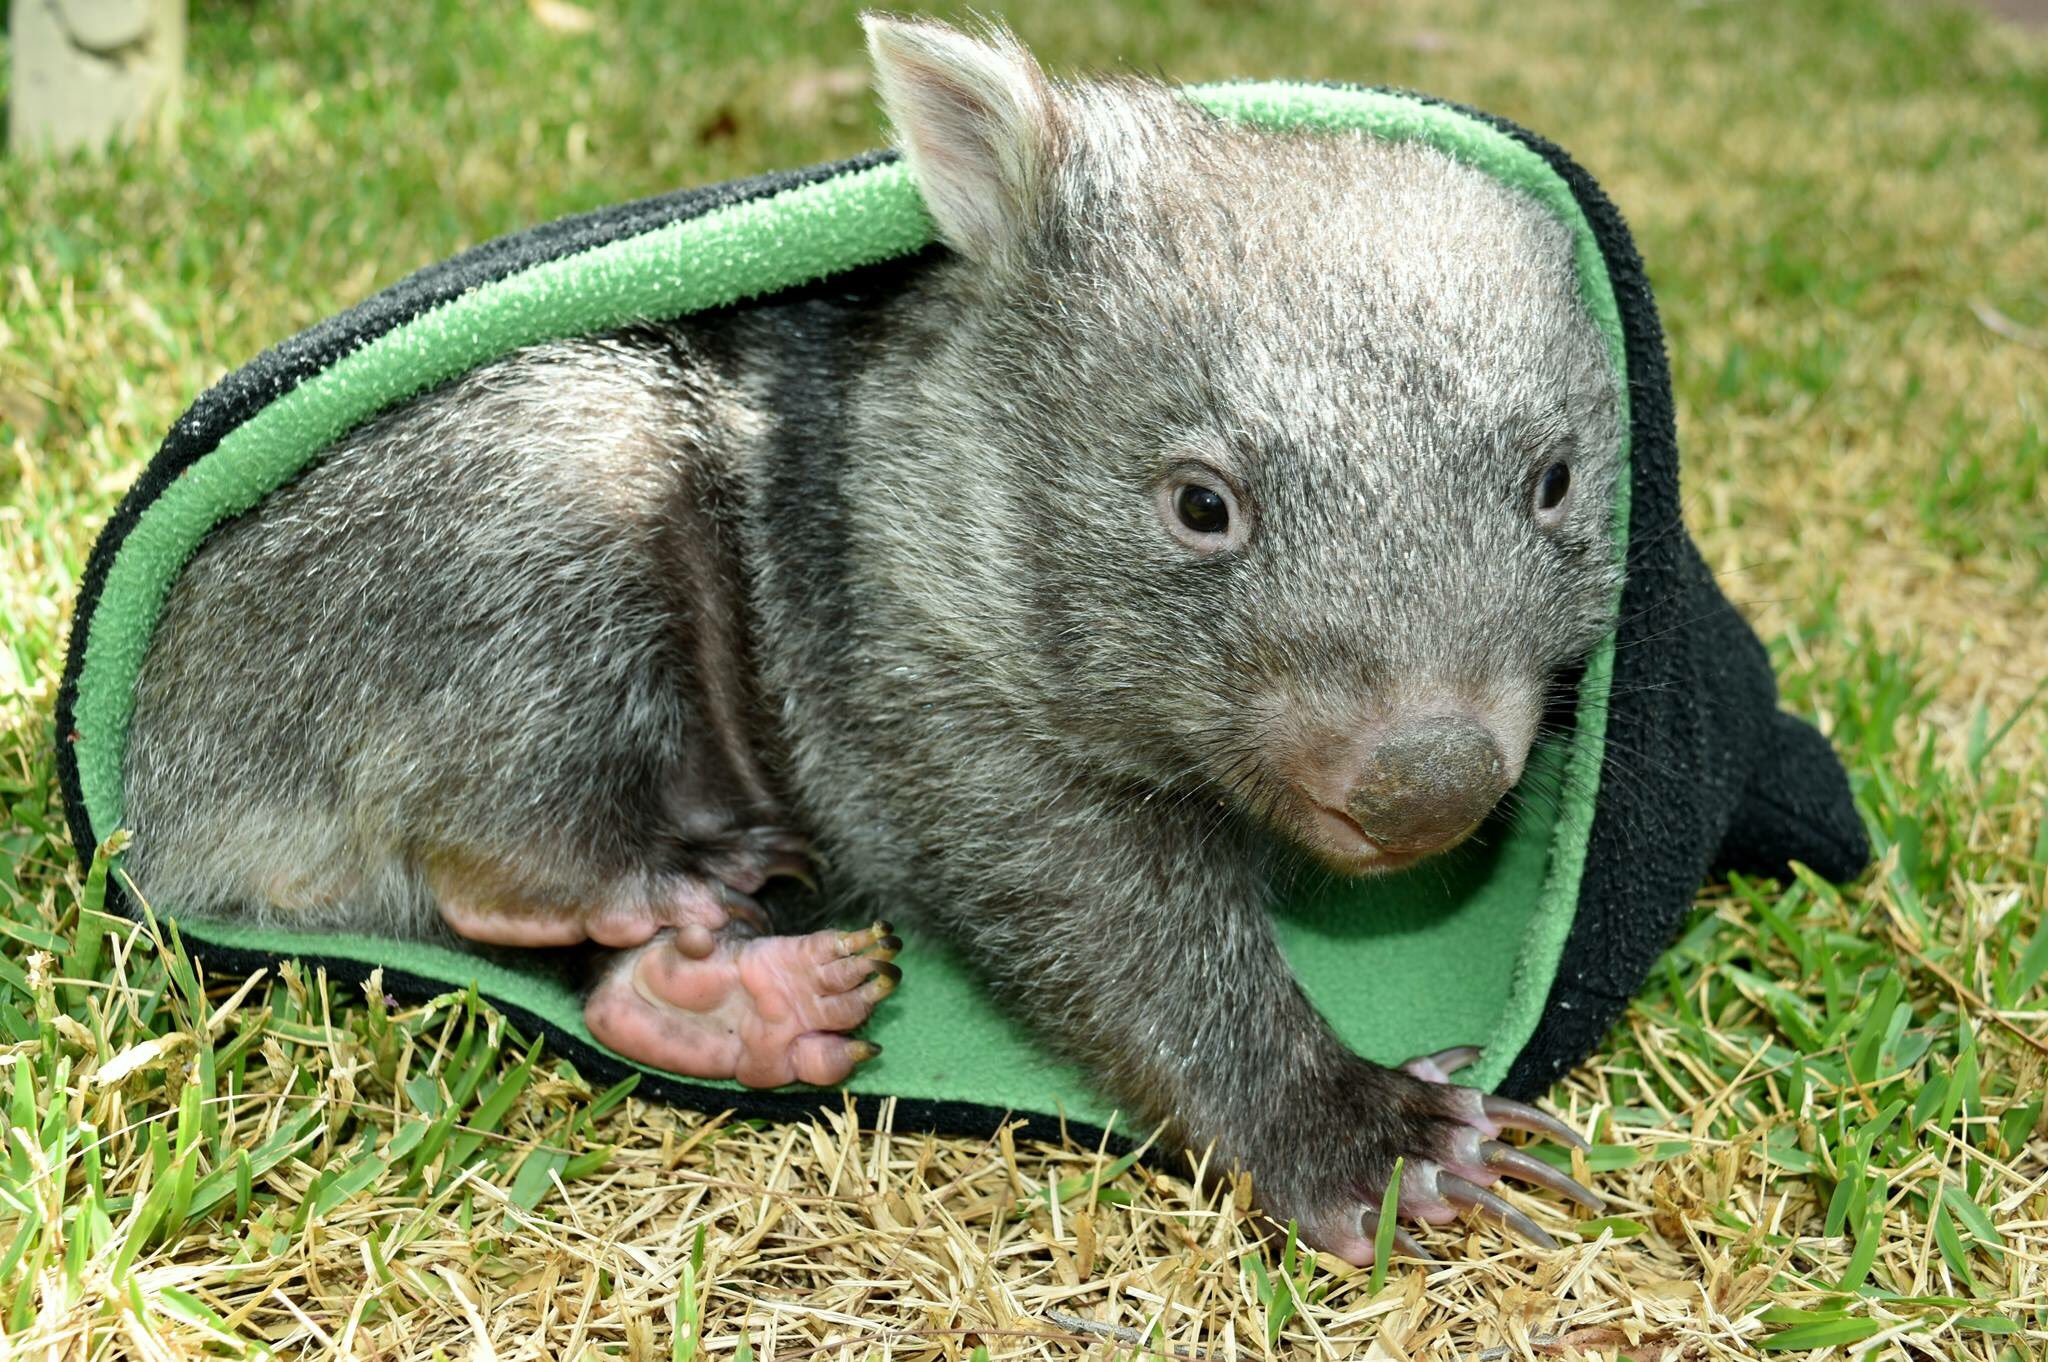 Hahaha yeah ok American zoos.. Try and beat George the baby wombat #checkmate #cuteanimaltweetoff https://t.co/6iQ8OPZlnz